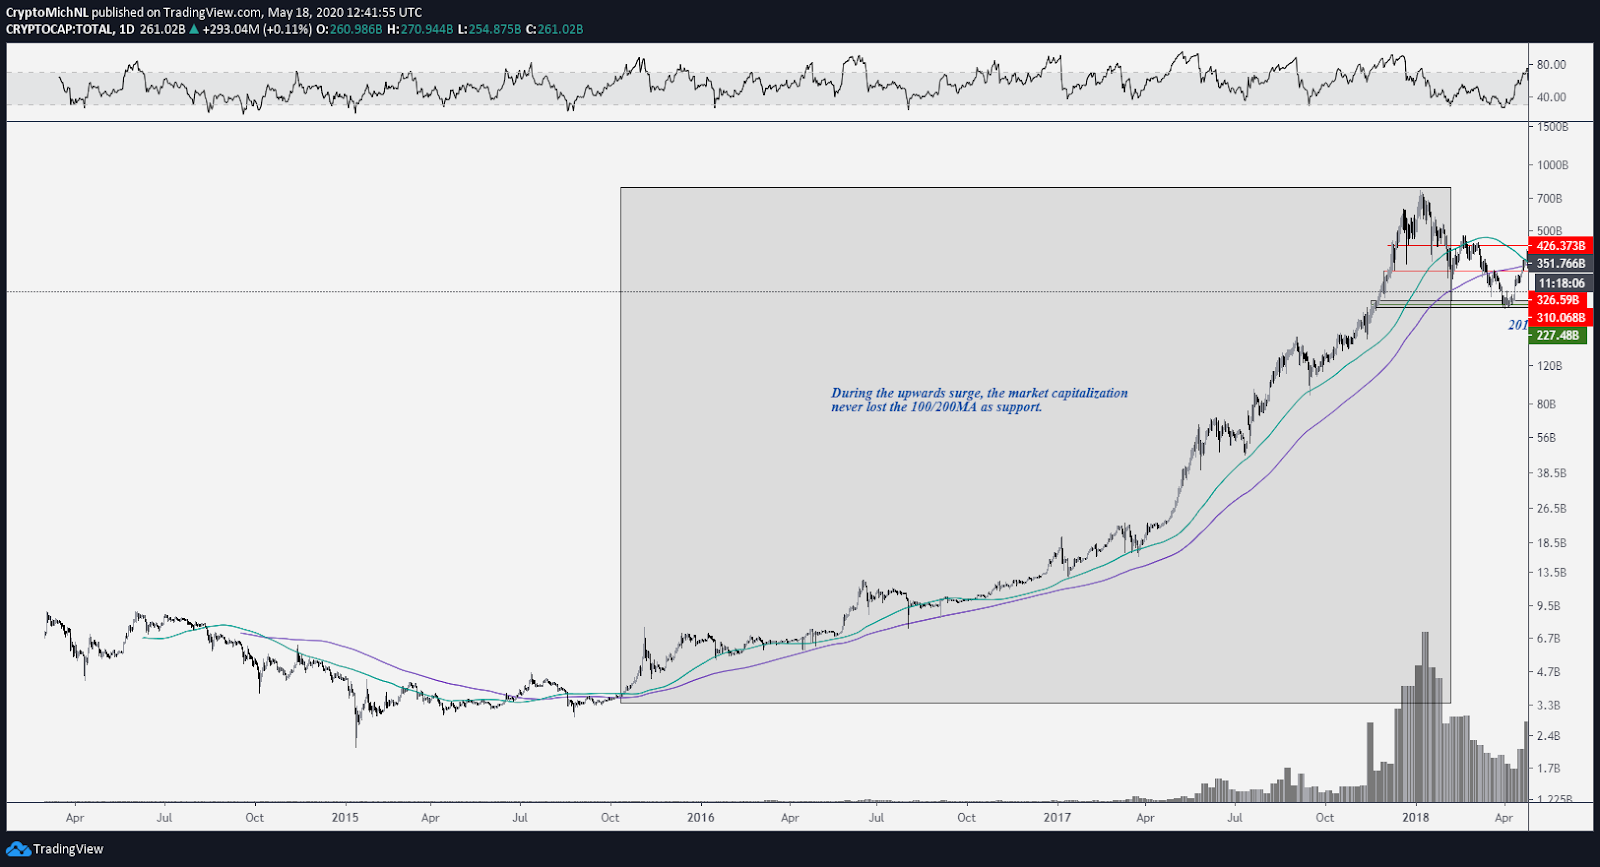 Total market capitalization cryptocurrency 1-day chart. Source: TradingView